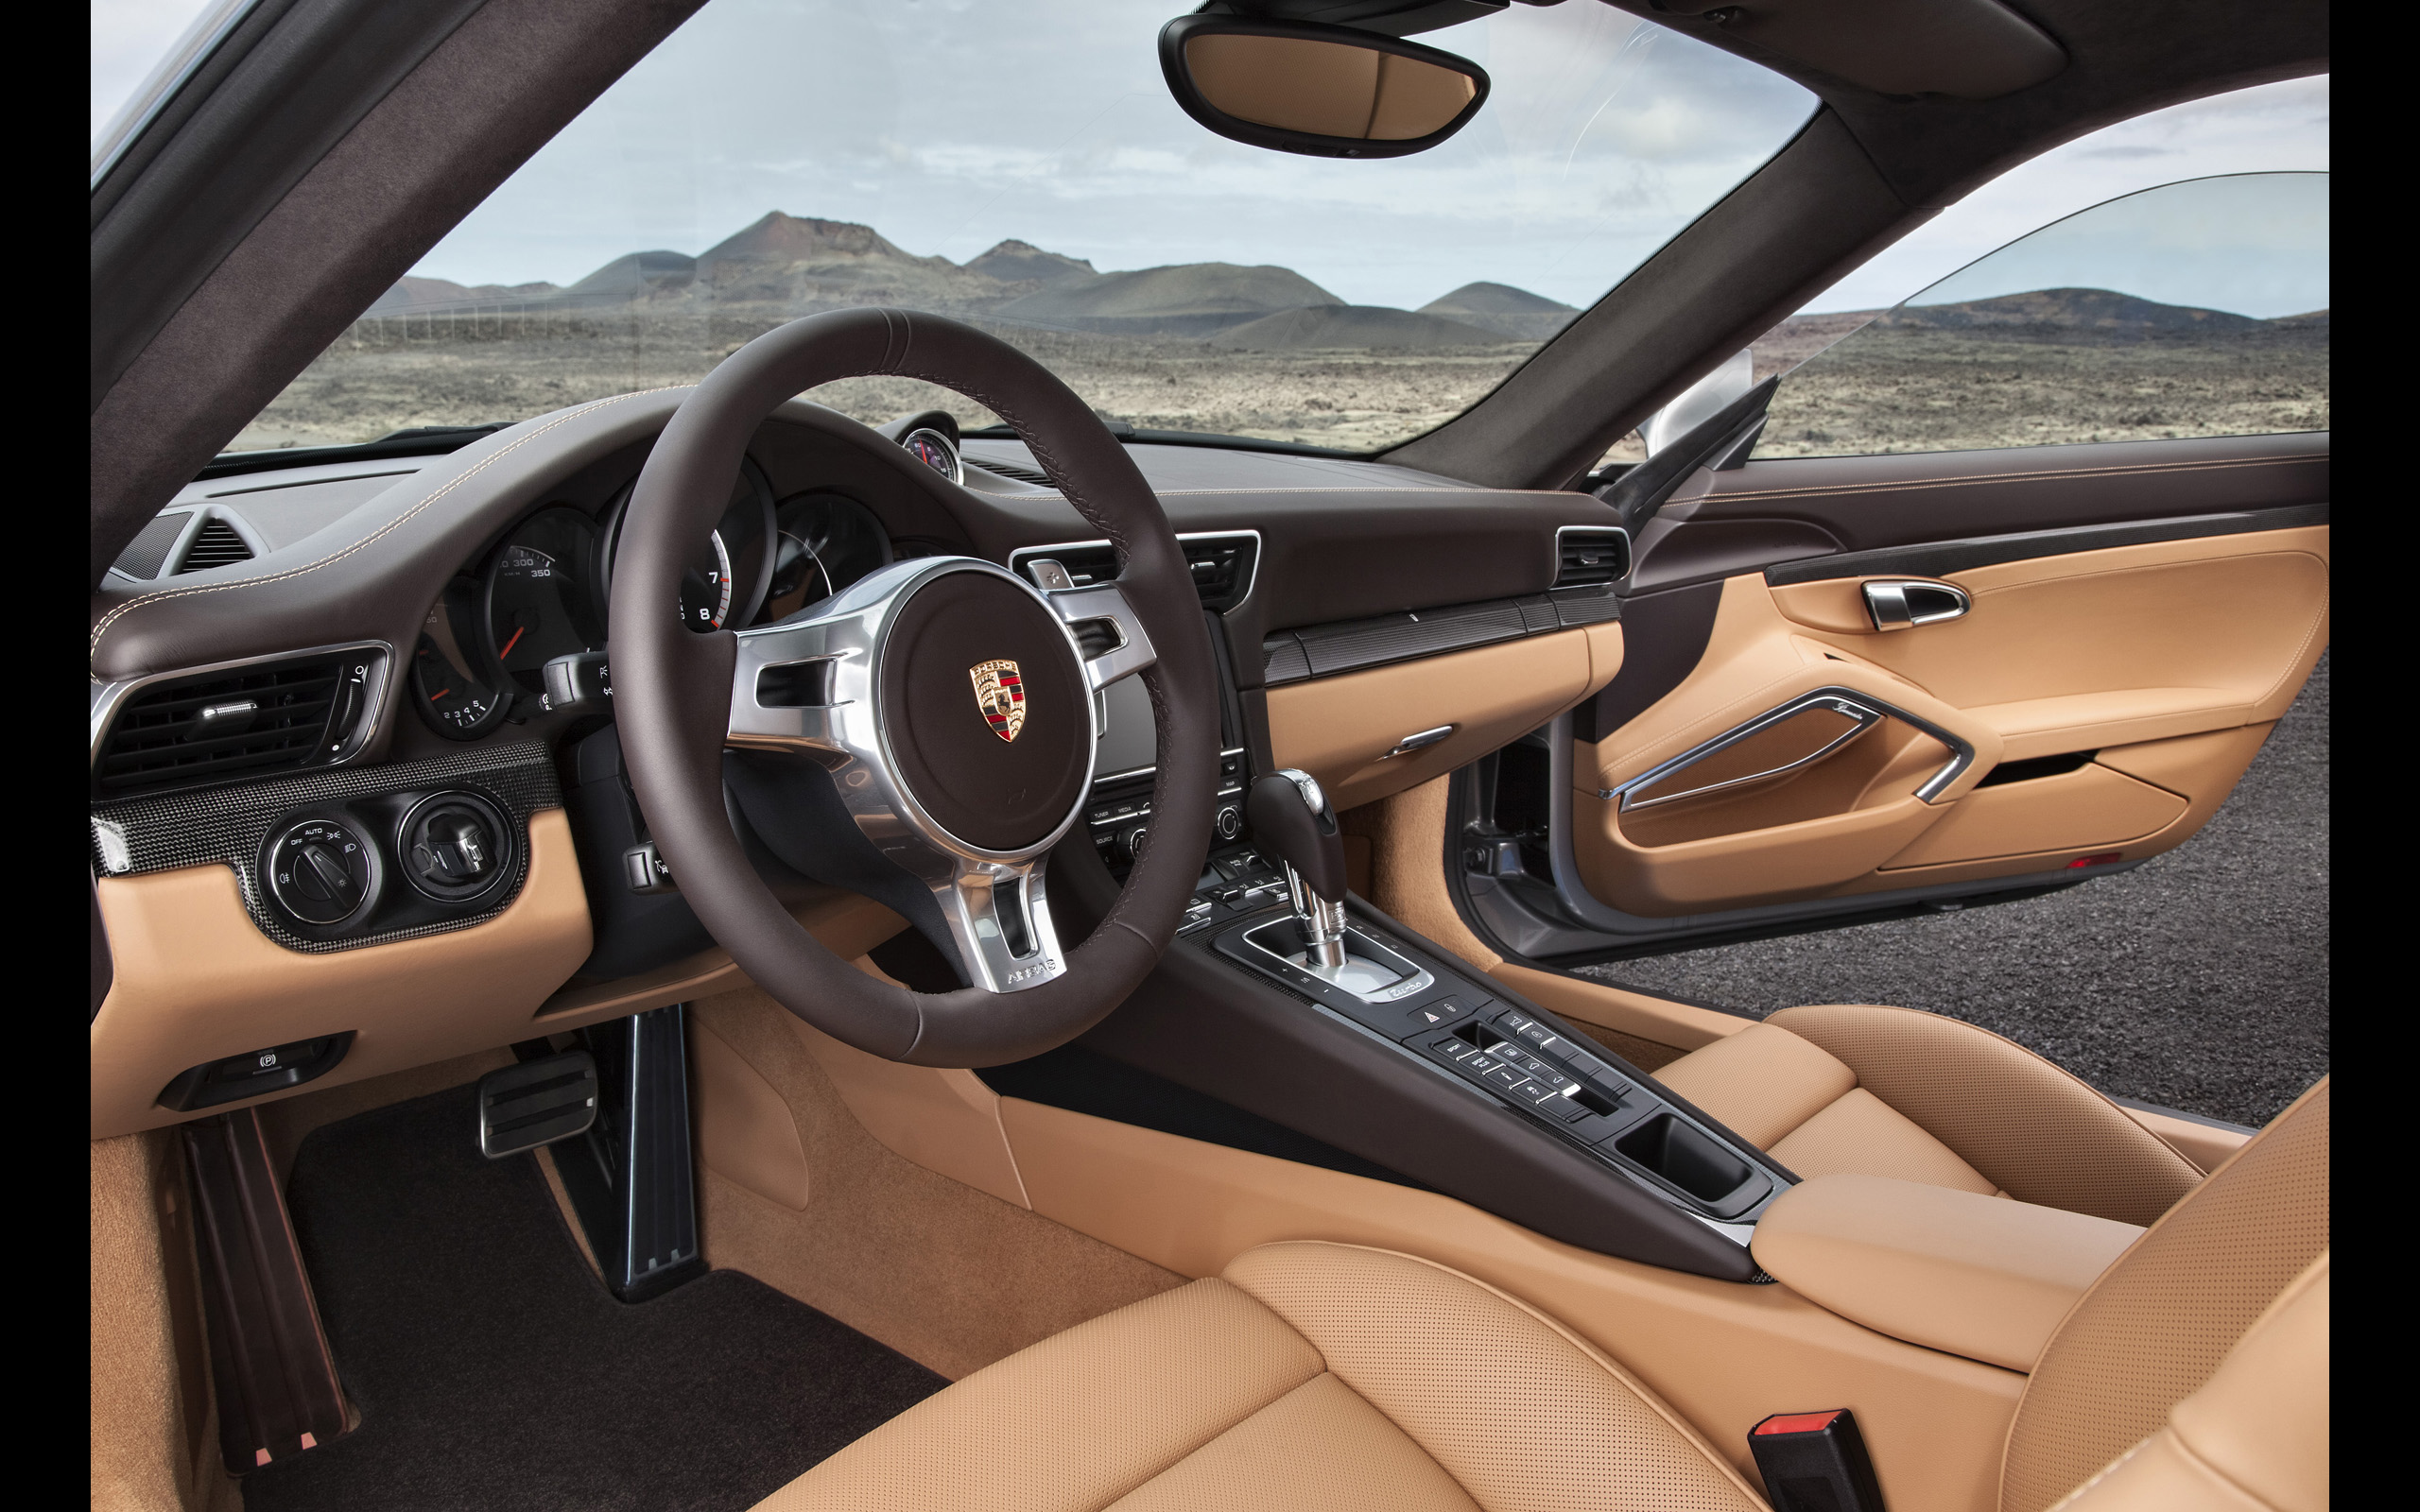 Porsche Macan White Interior Wallpaper 1024x768 22448